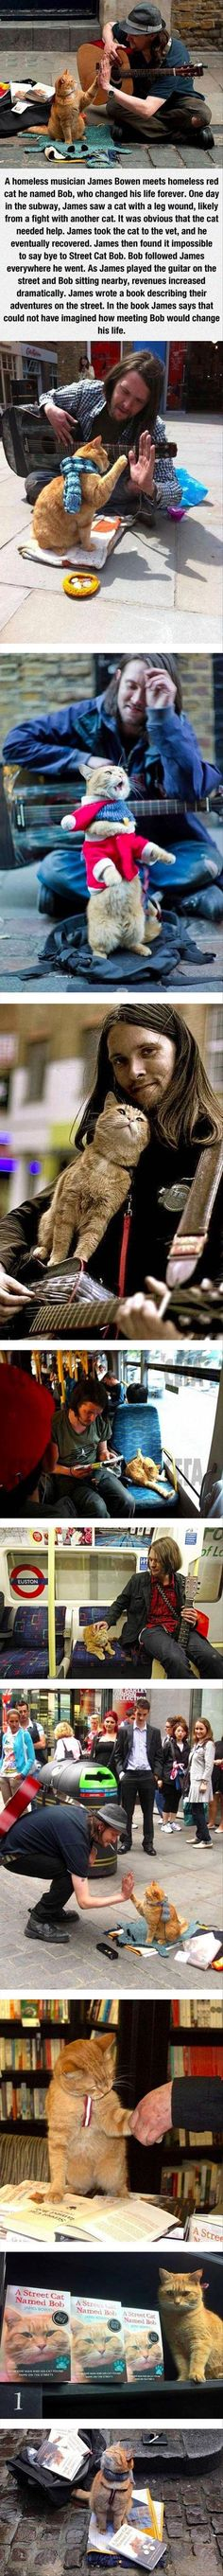 A Homeless Musician And His Cat cat story musician cool story.orange kitties are the best I Love Cats, Cute Cats, Funny Cats, Cat Fun, Pretty Cats, Animals And Pets, Funny Animals, Cute Animals, Funniest Animals